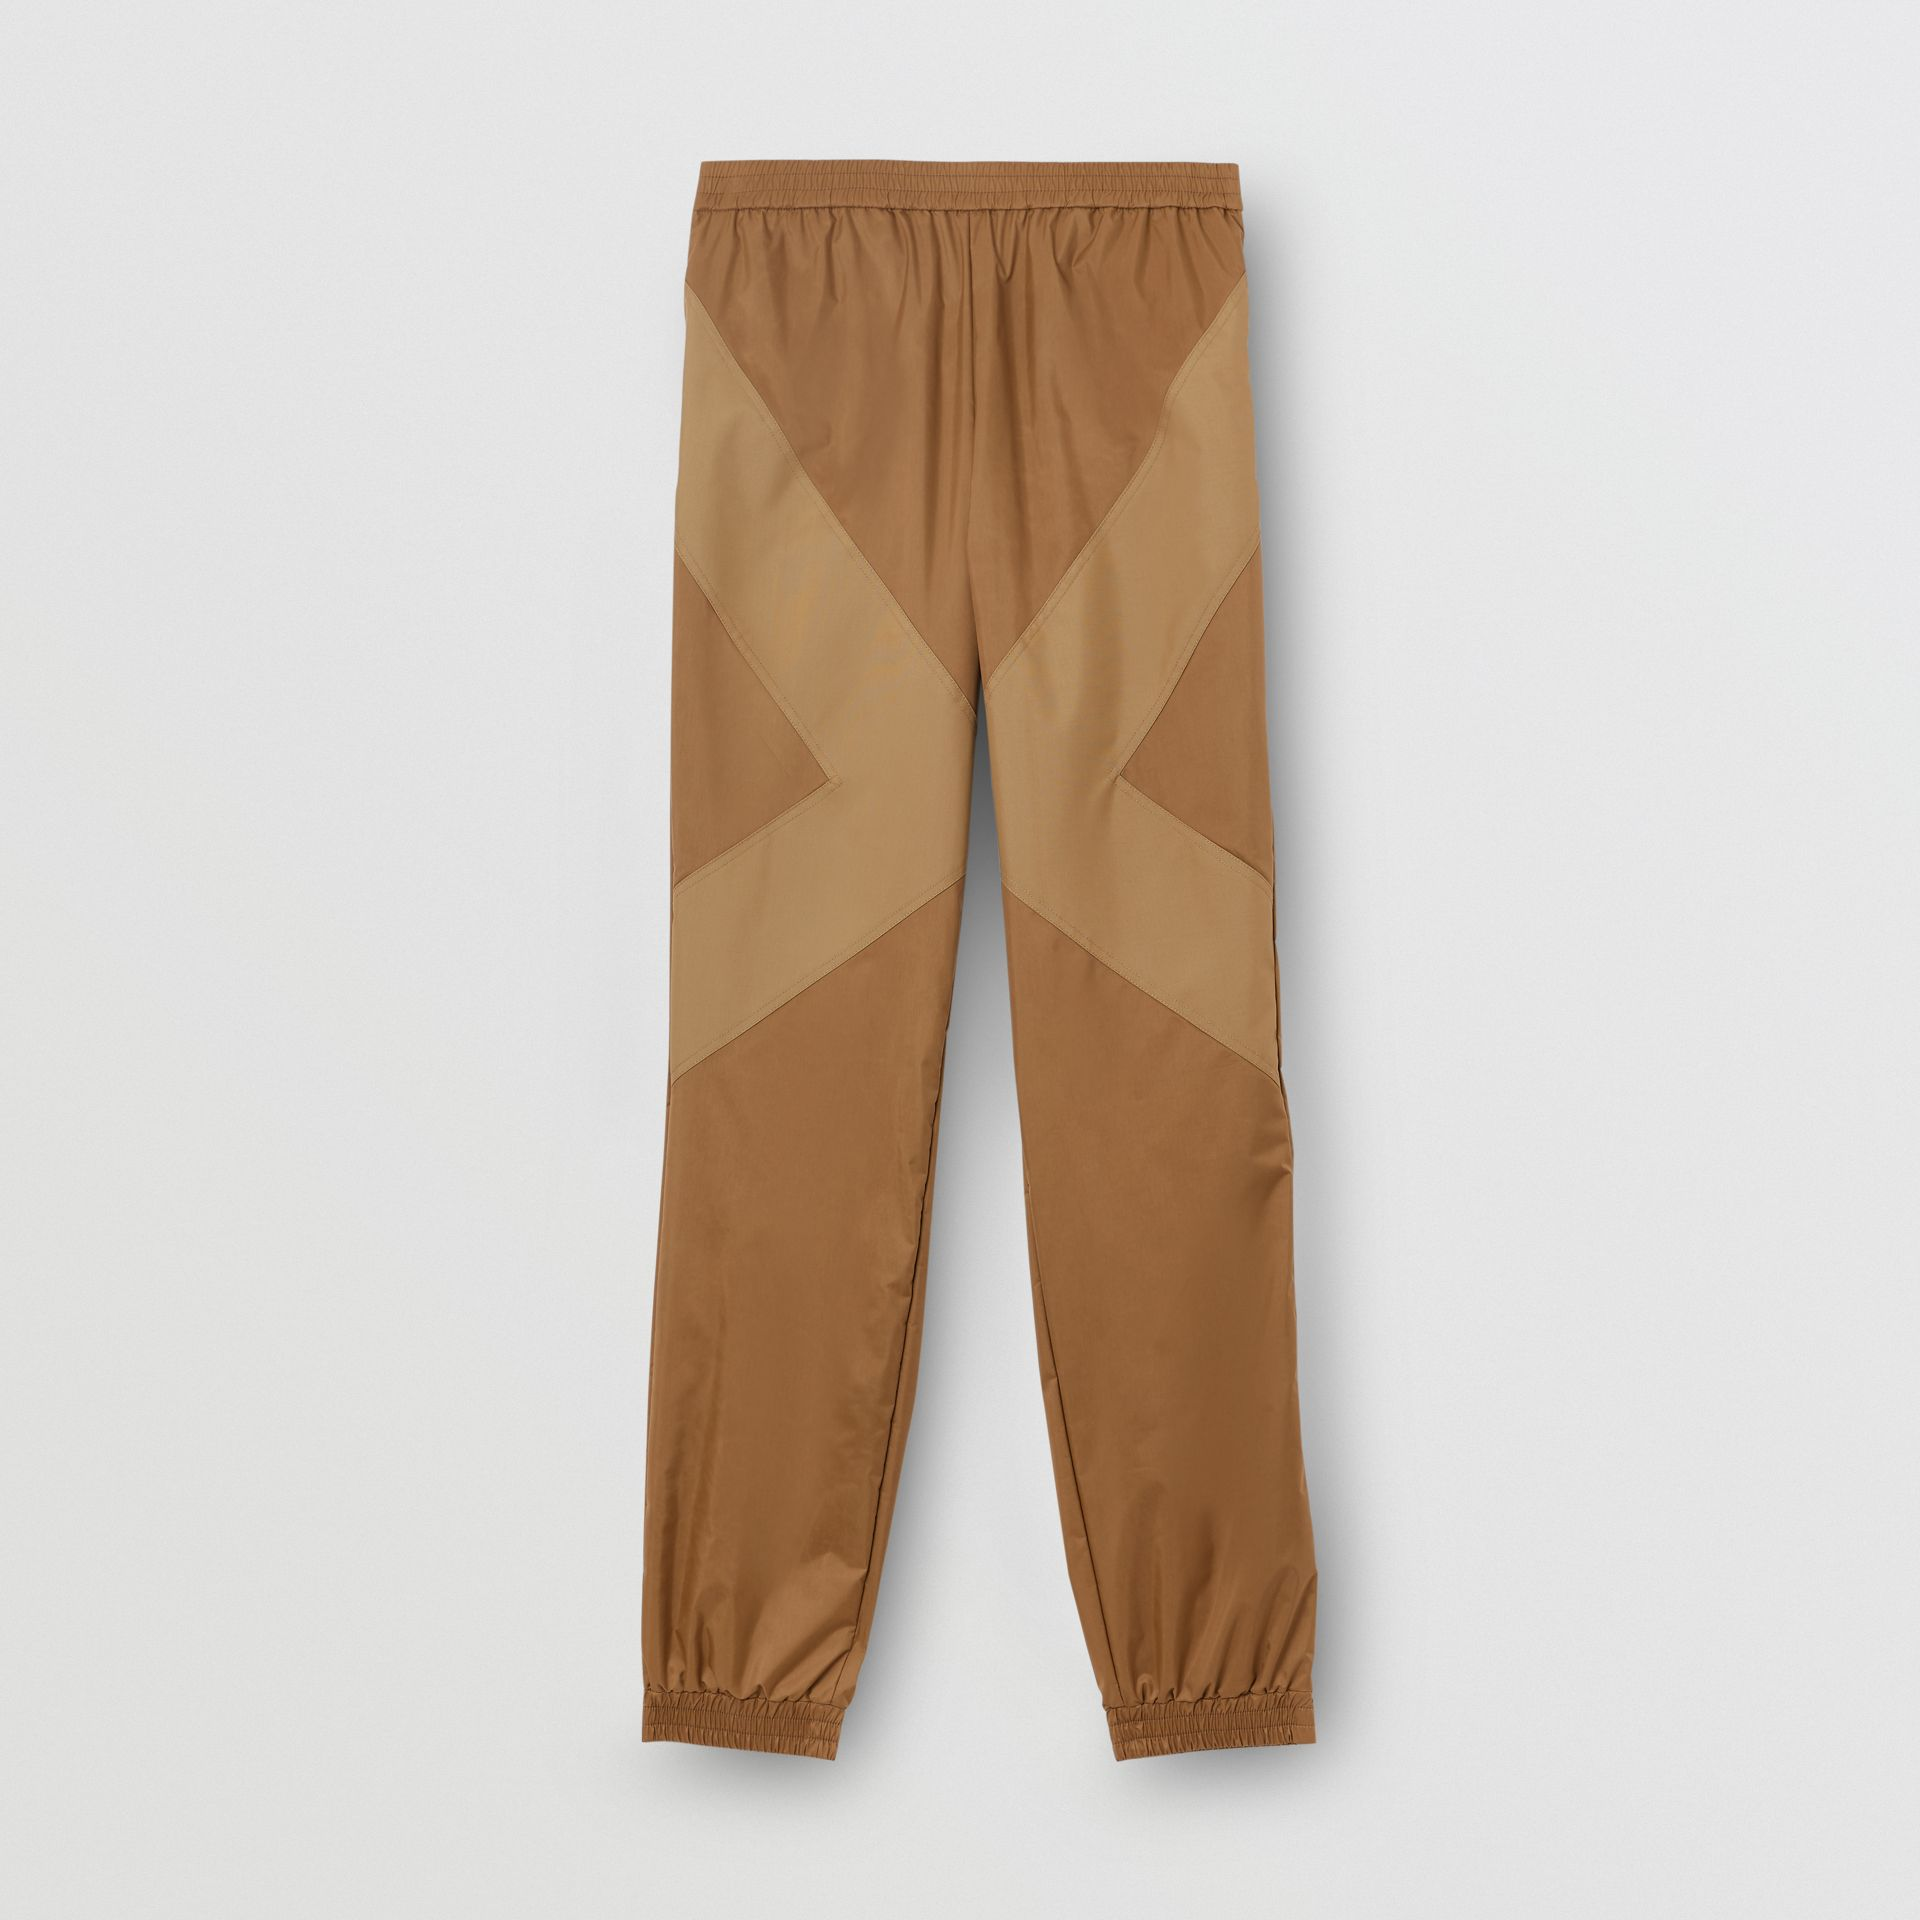 Two-tone Nylon Trackpants in Warm Walnut - Men | Burberry United States - gallery image 3